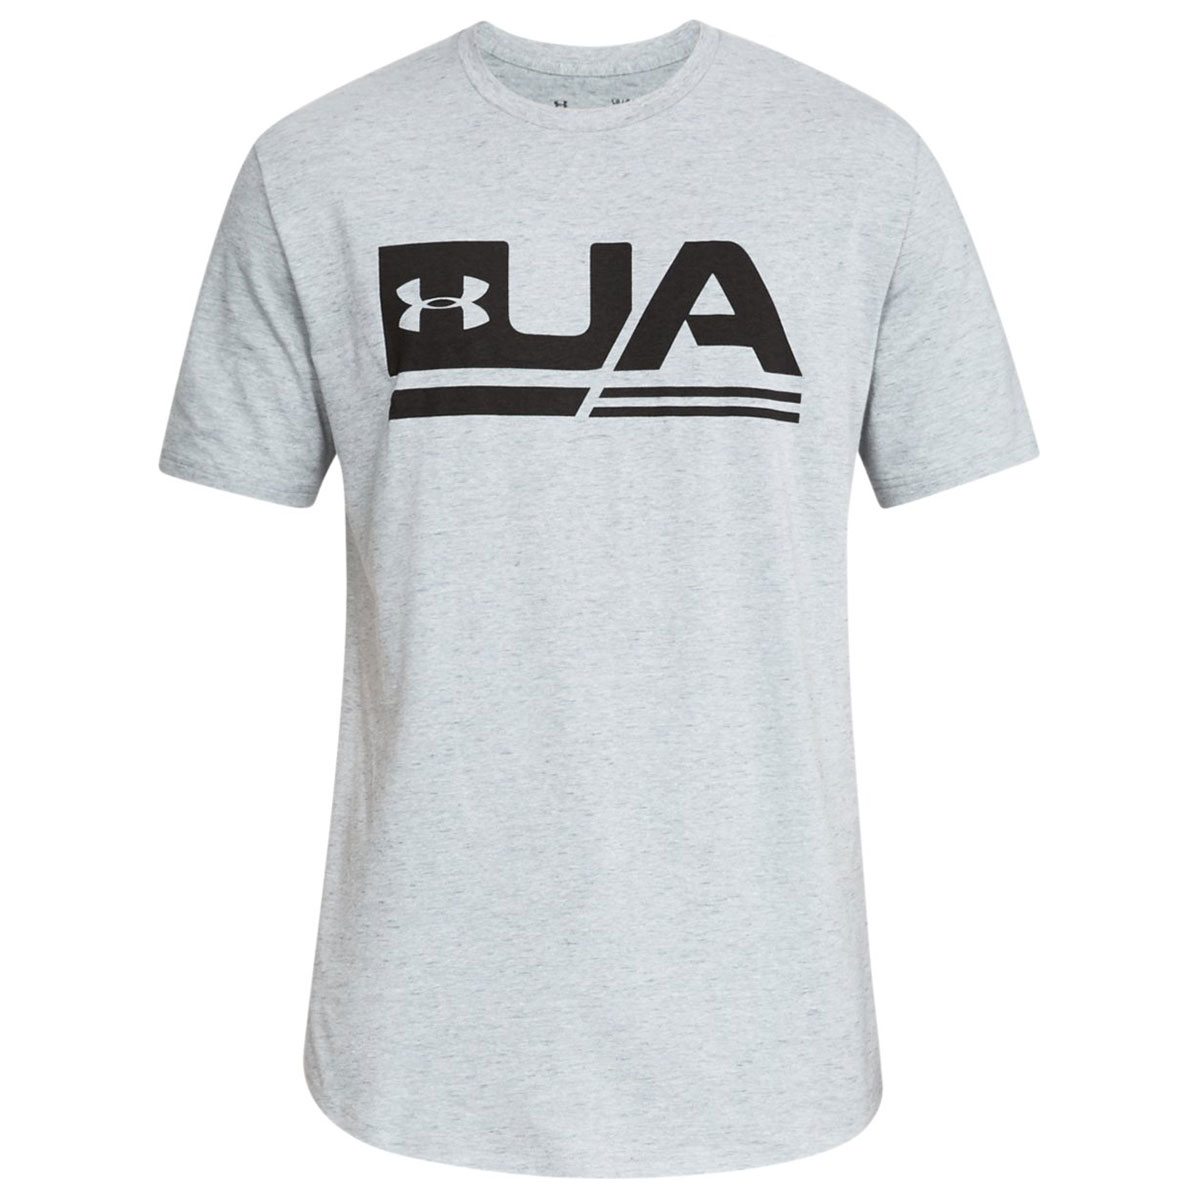 Under-Armour-Mens-UA-Sportstyle-SS-Moisture-Wicking-T-Shirt-39-OFF-RRP thumbnail 12